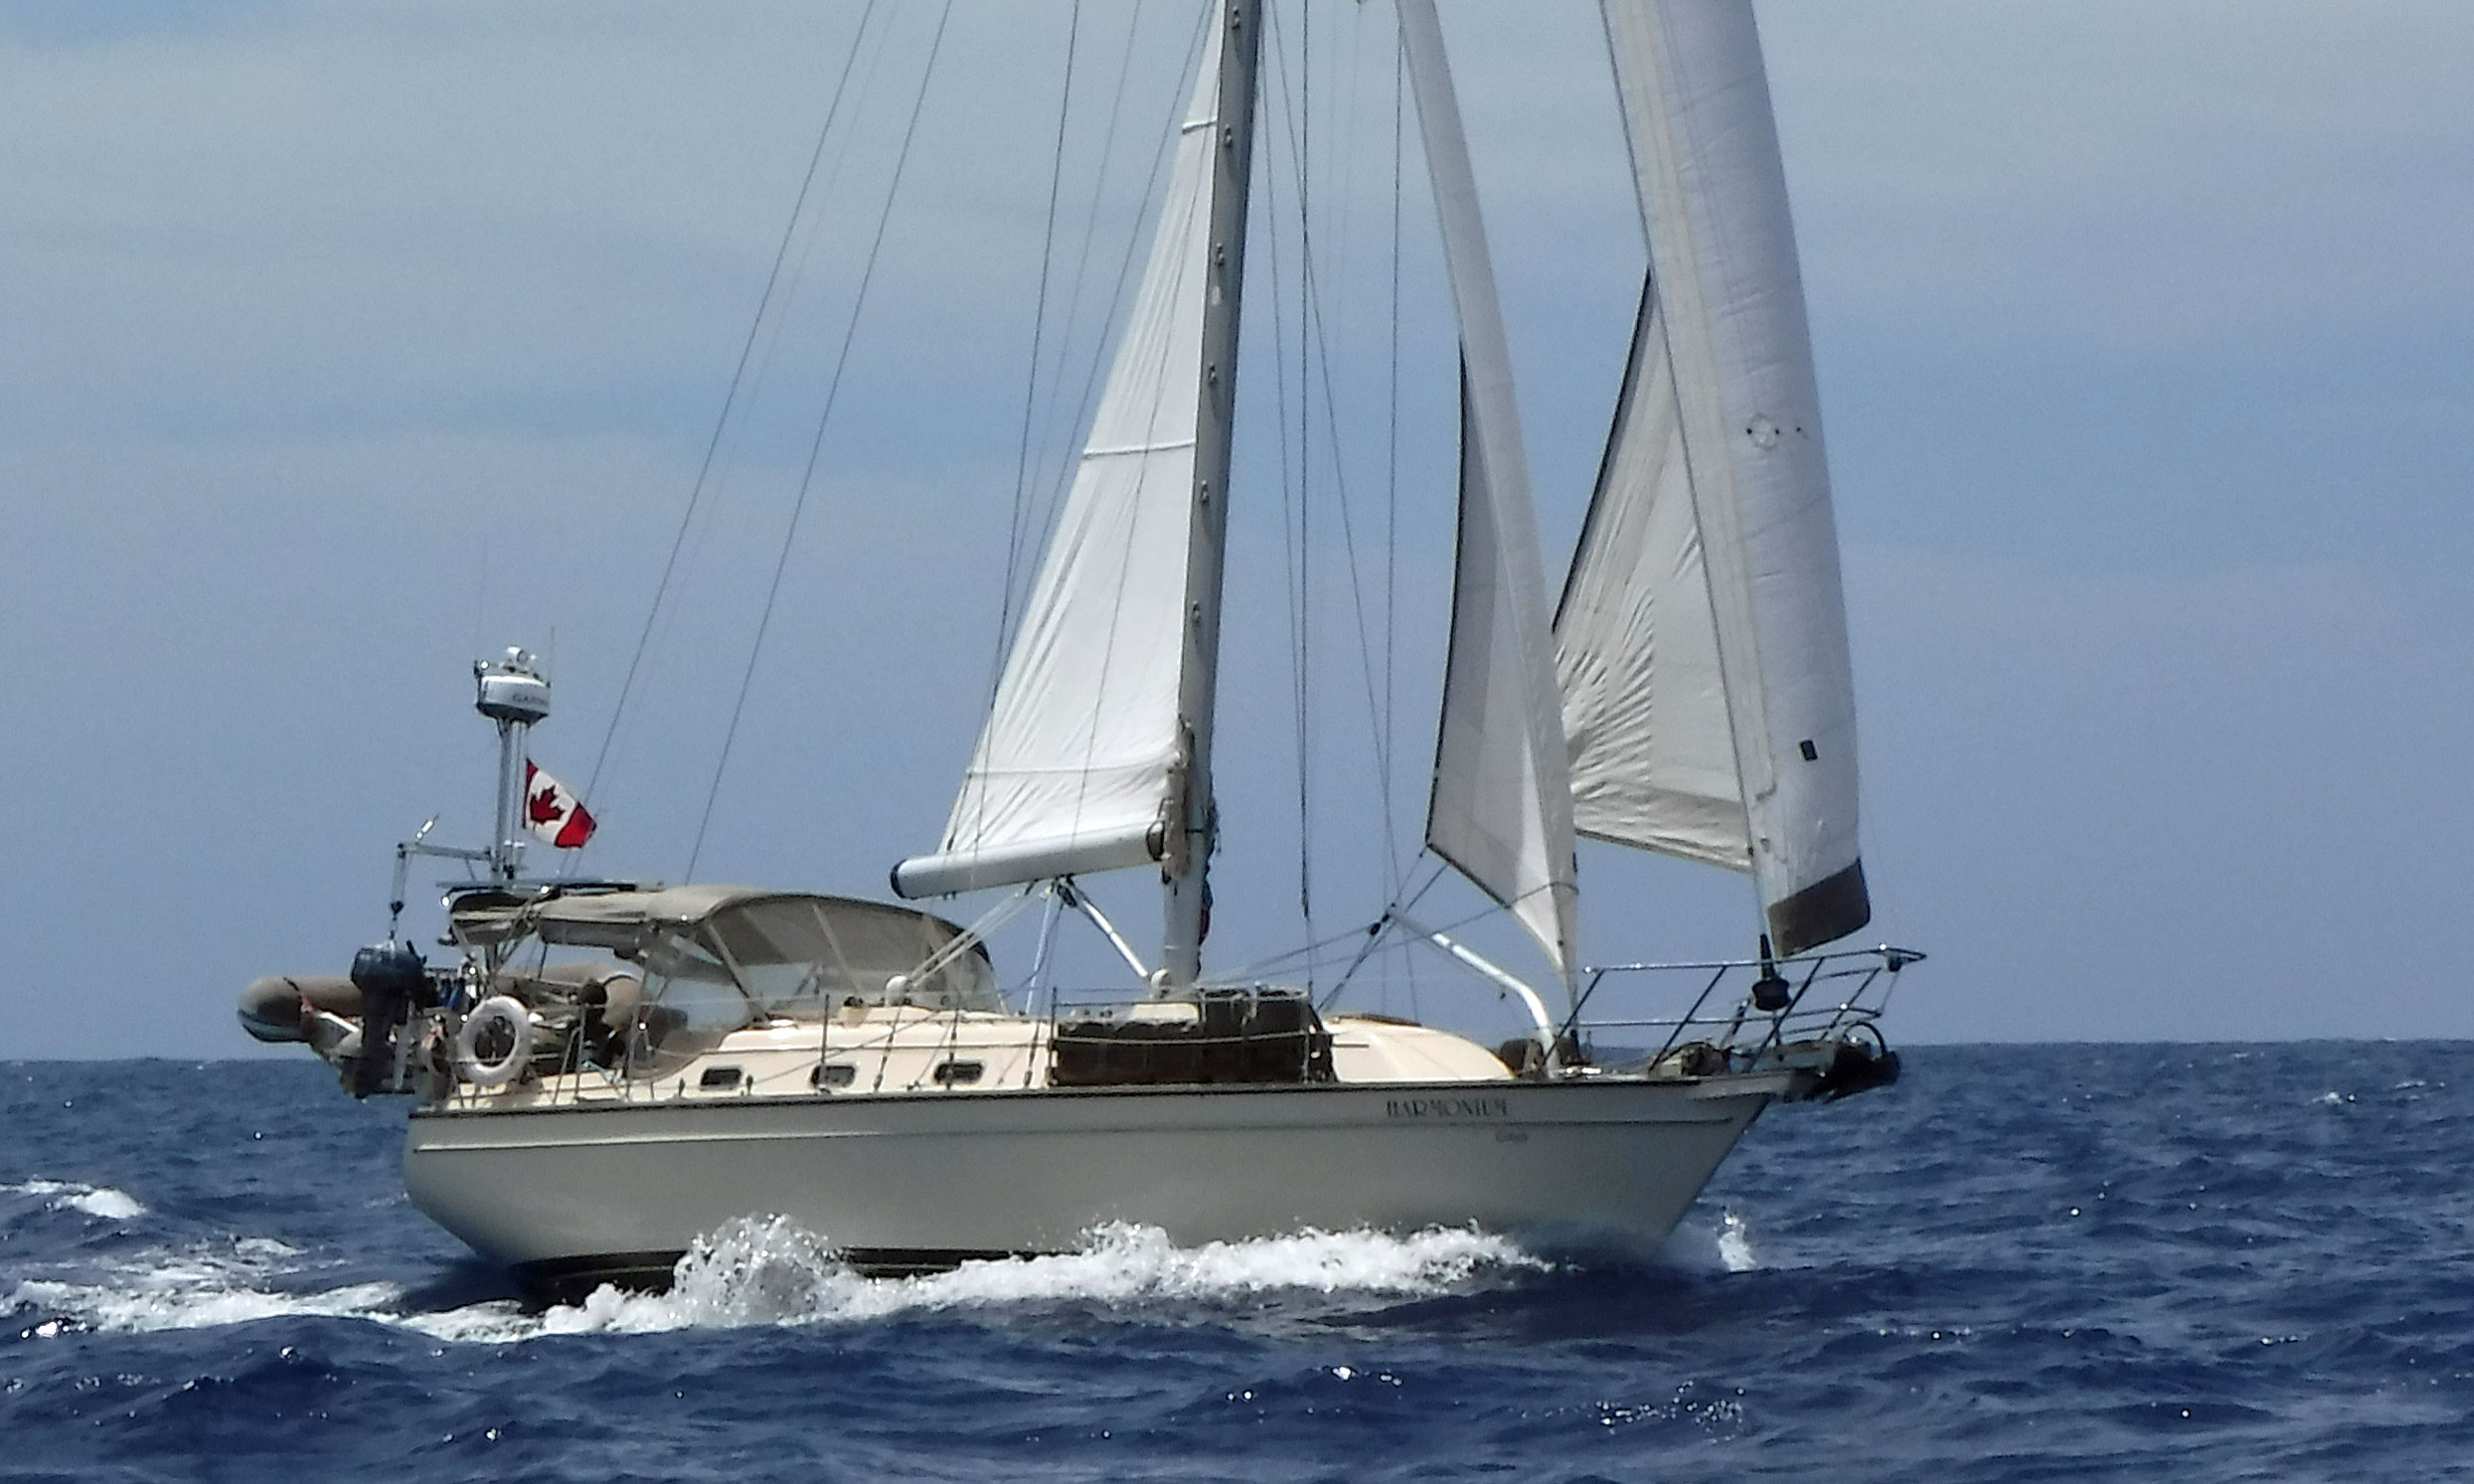 Is The Cutter Rig Sailboat the Best Choice for Offshore